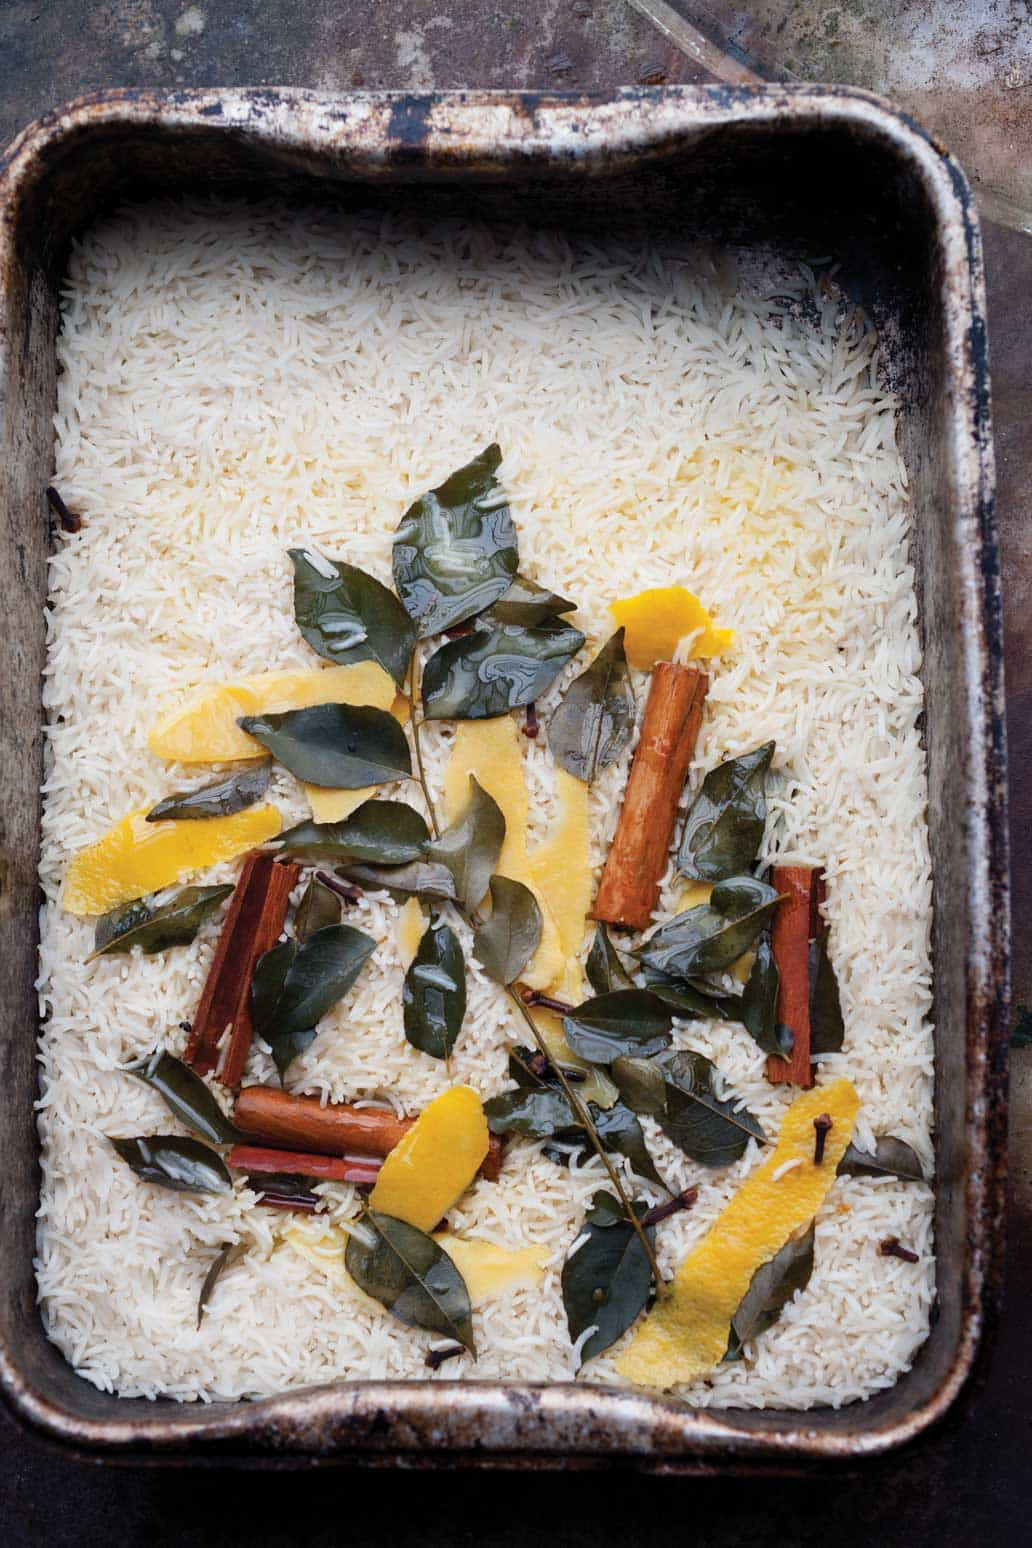 Lemon, Cinnamon and Curry Leaf Basmati Rice